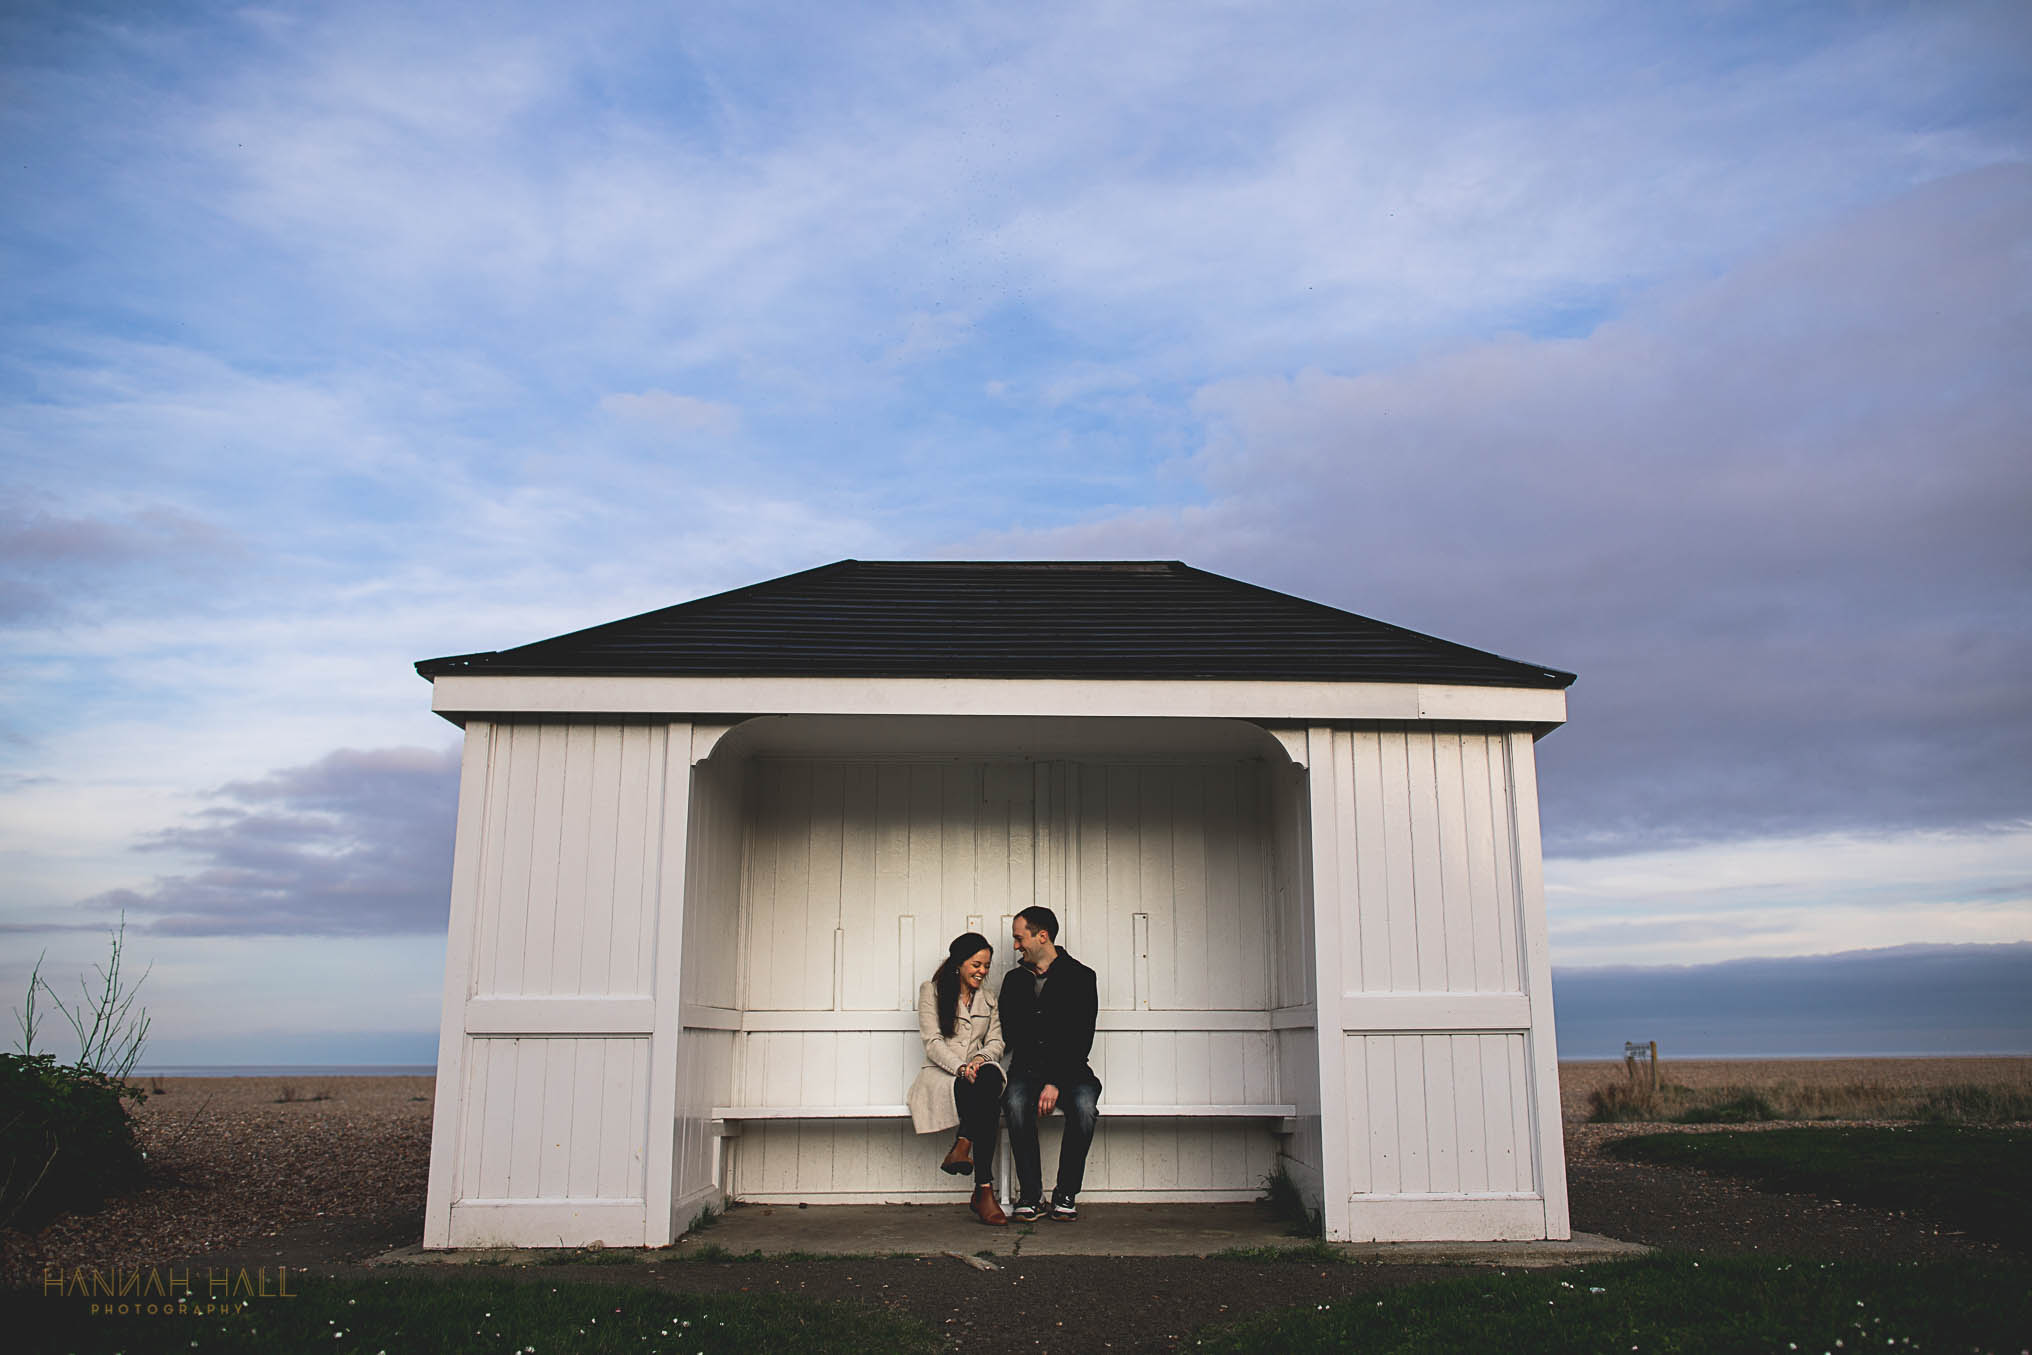 aldeburgh-beach-suffolk-prewedding-shoot-18